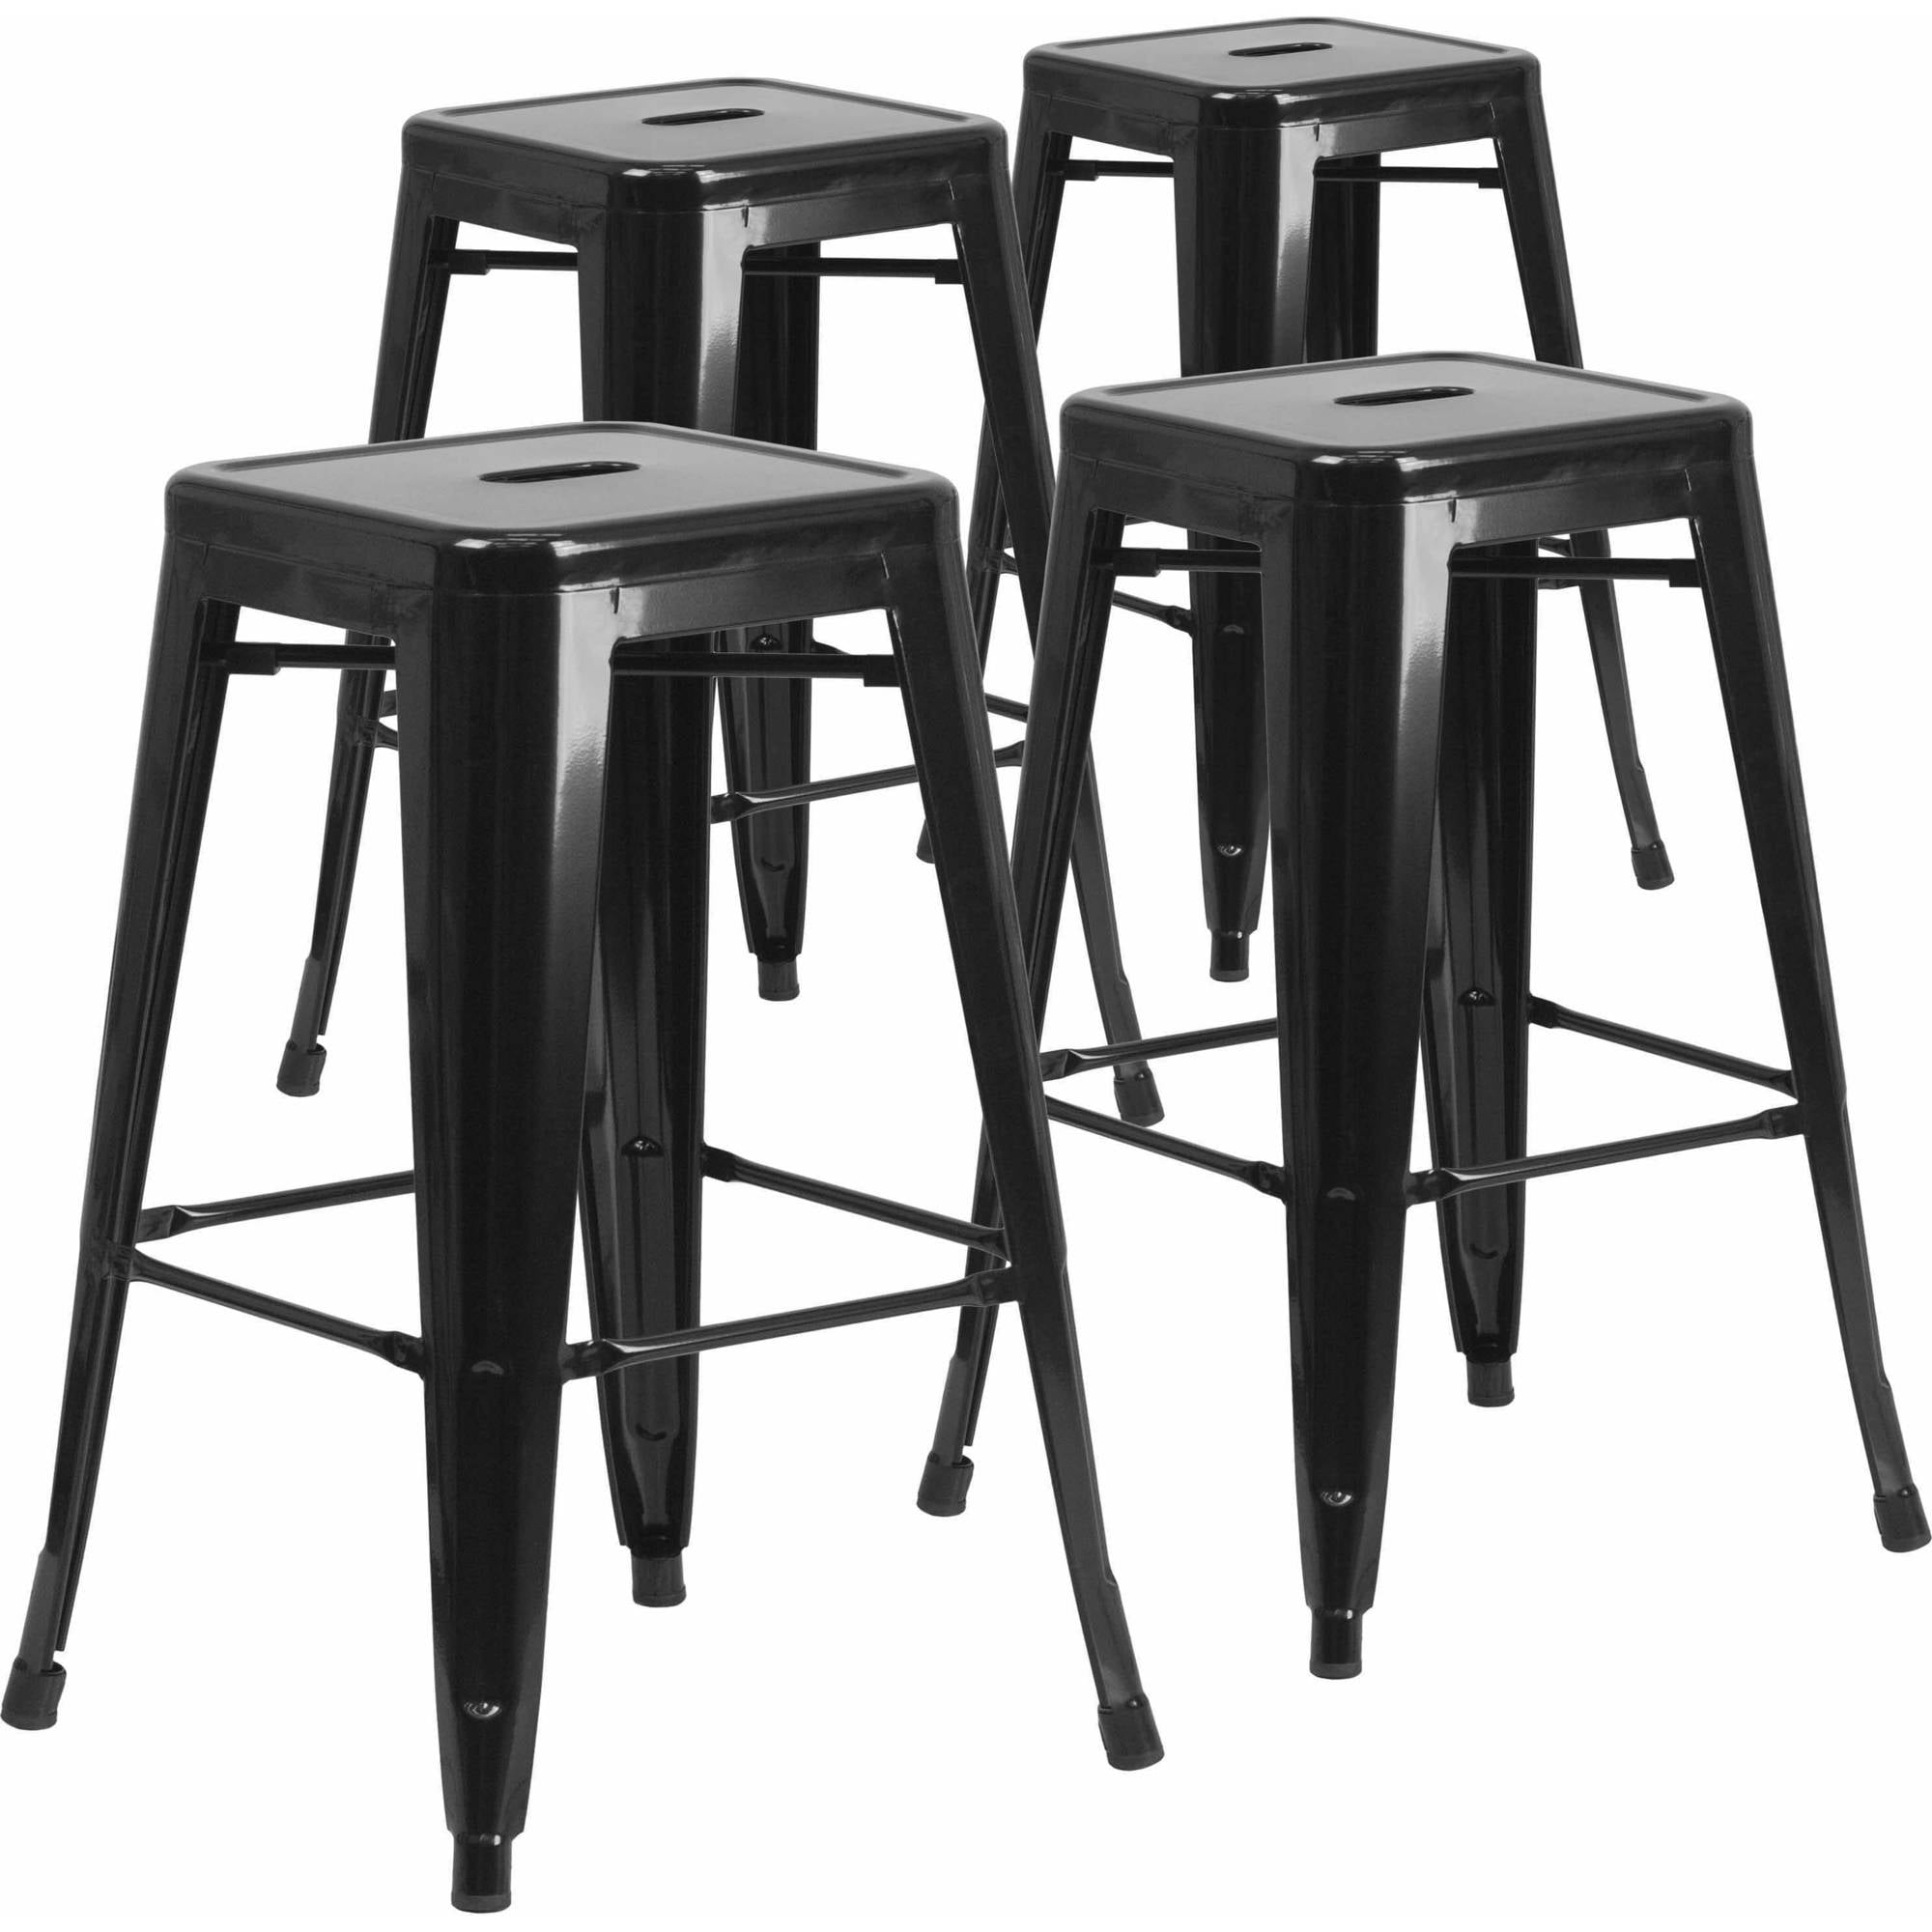 exciting backs bar counter black with and traditional arms wooden back wood stool backless upholstered stools chairs height swivel